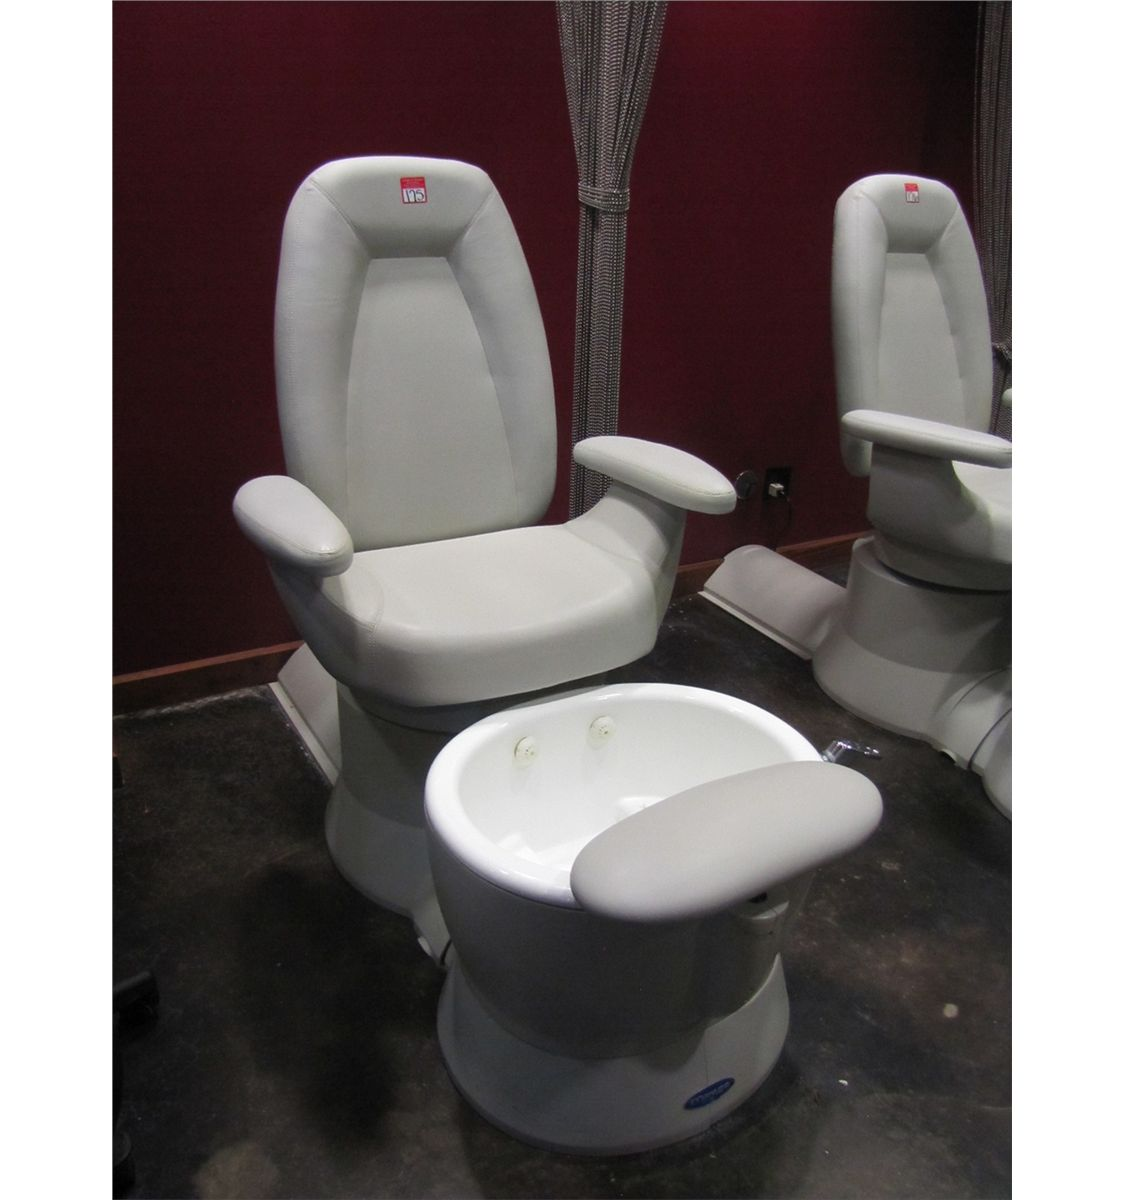 Pedicure Chair Belvedere Whirlpool Pedicure Spa Chair Model 101907 1242